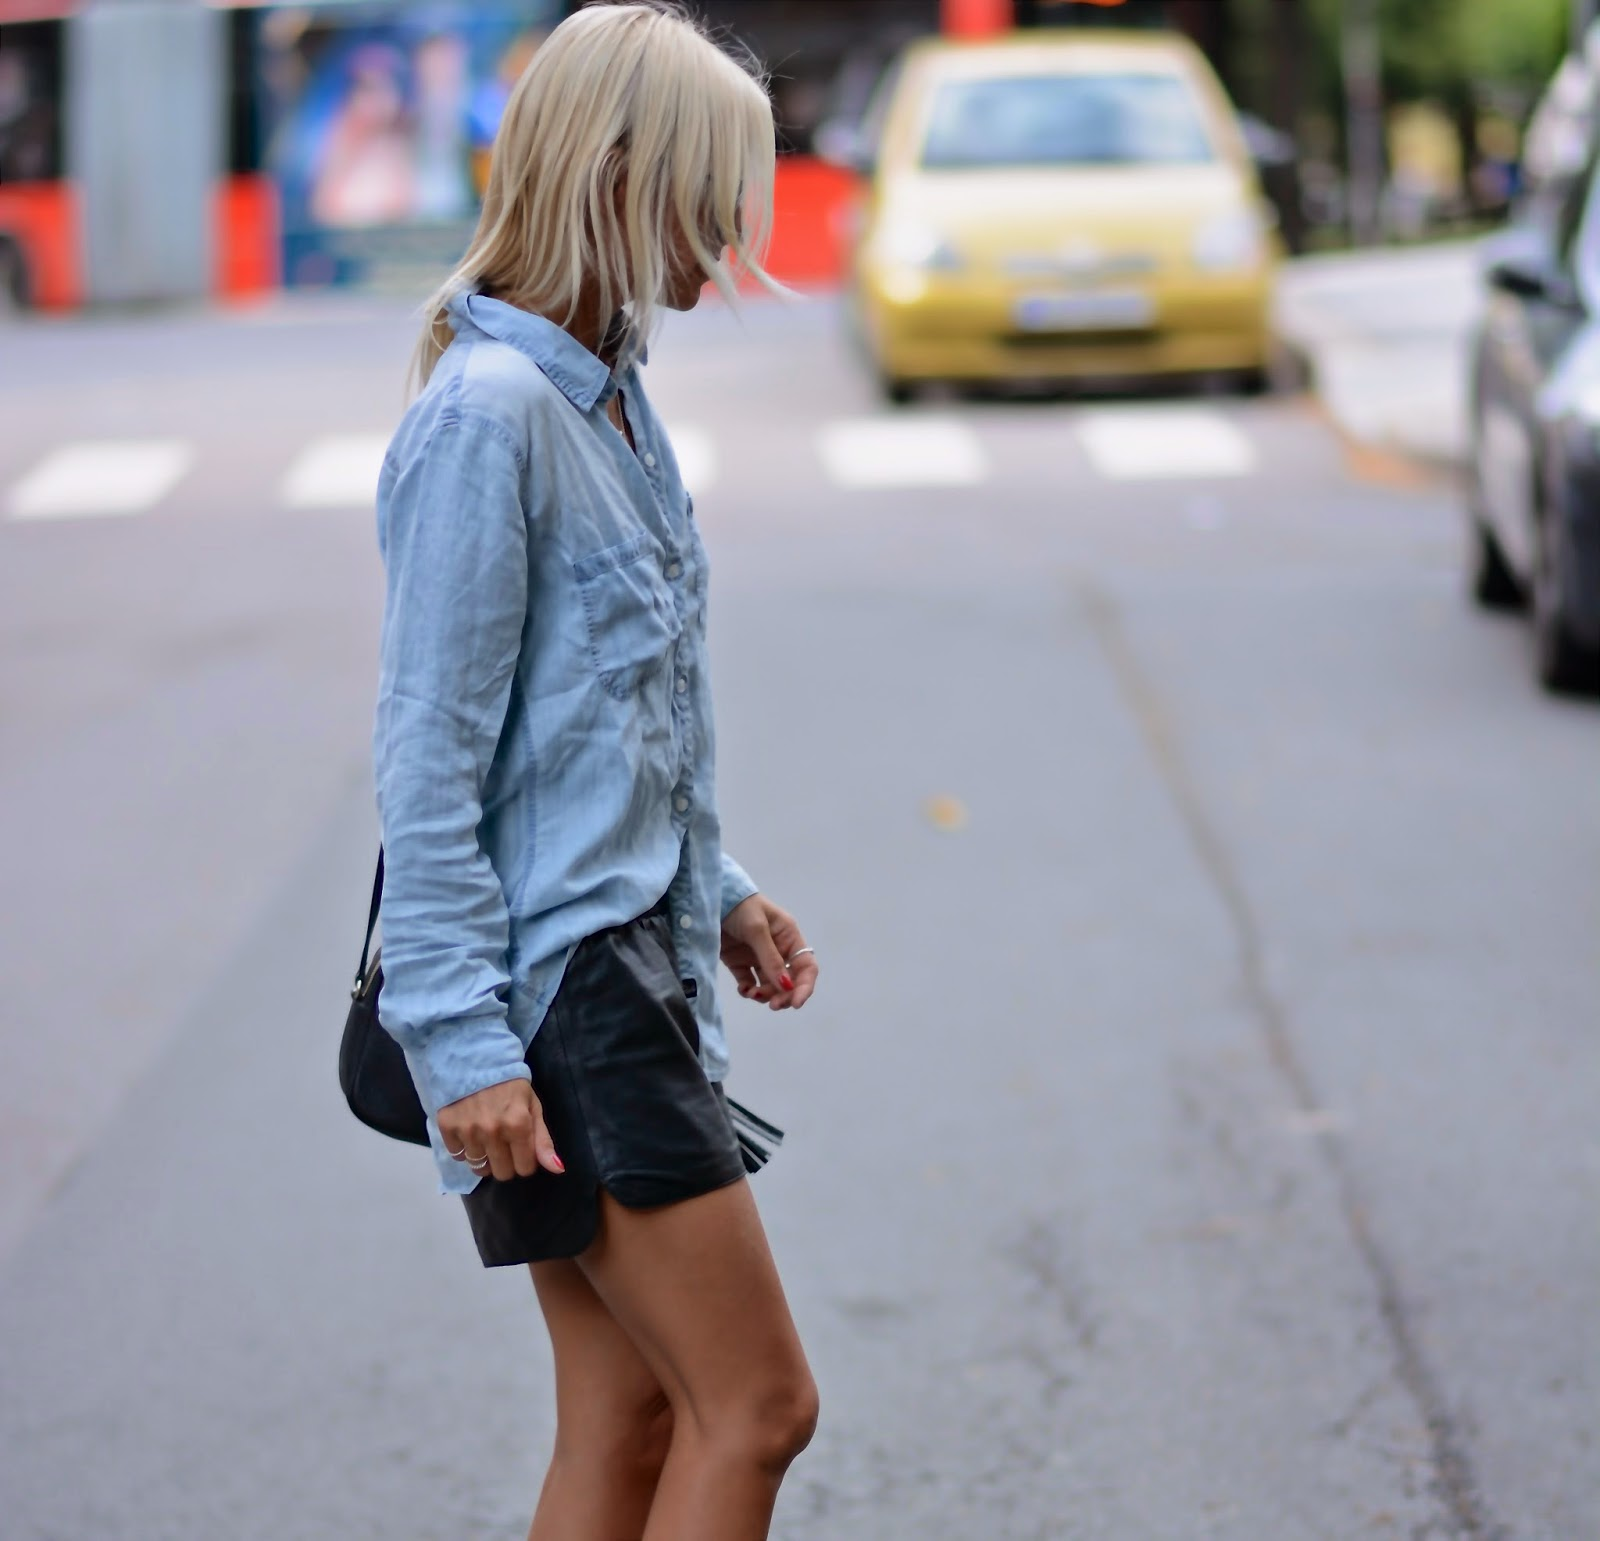 Celine Aagaard is wearing a chambray shirt from Rails and shorts from H&M